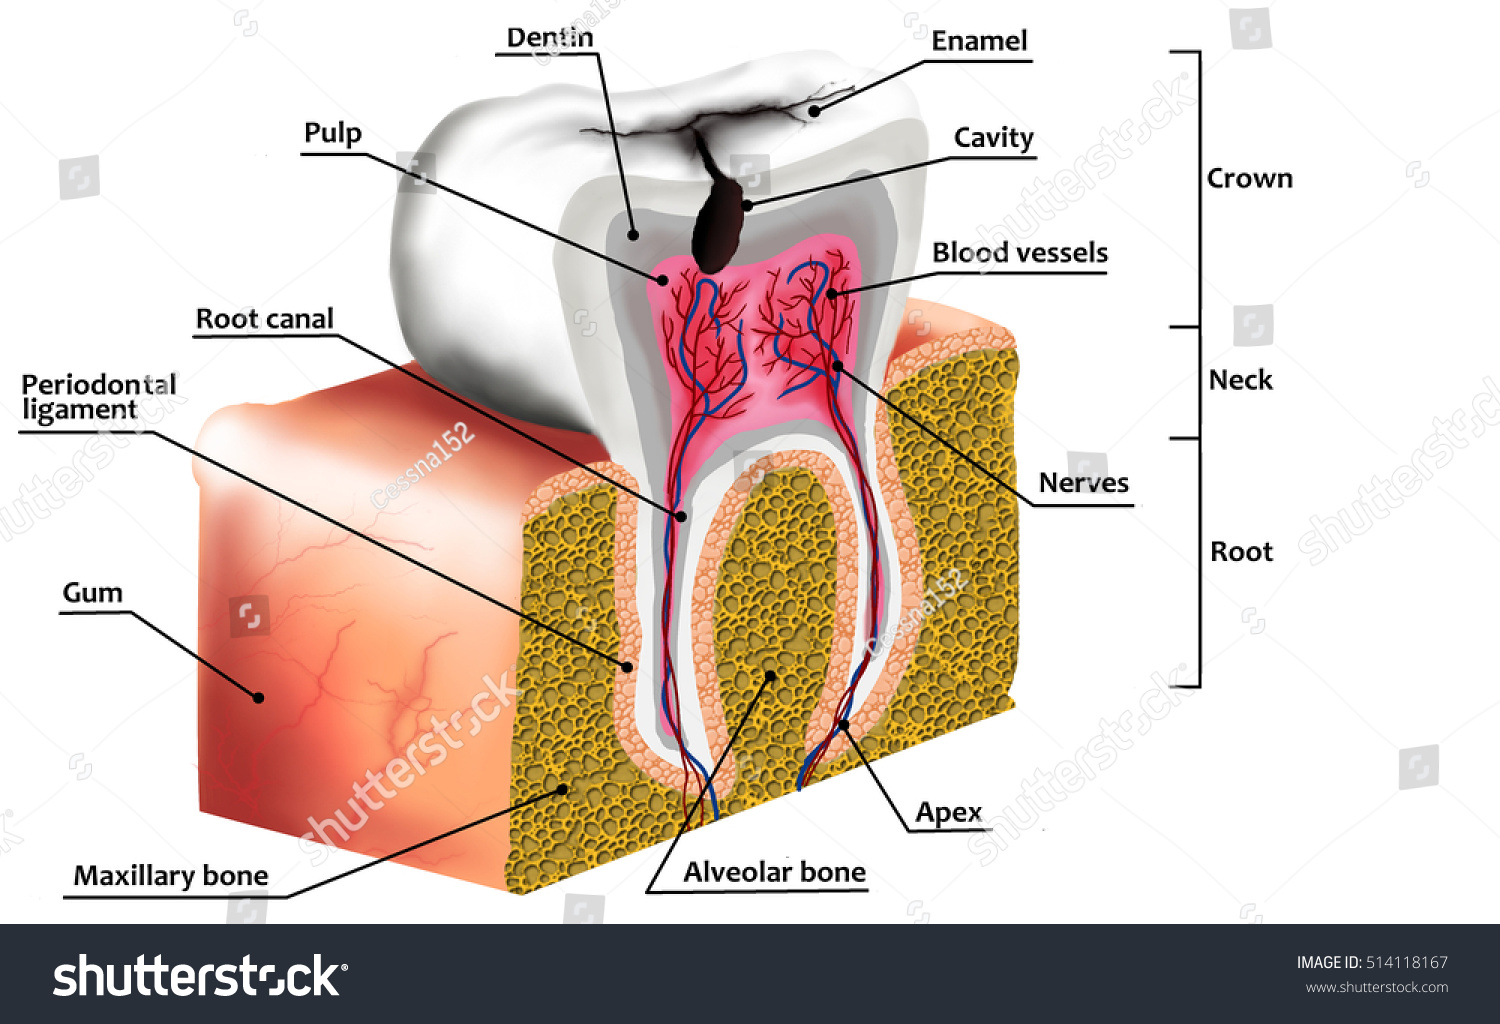 Human Tooth Decay Anatomy Diagram Description Stock Illustration ...